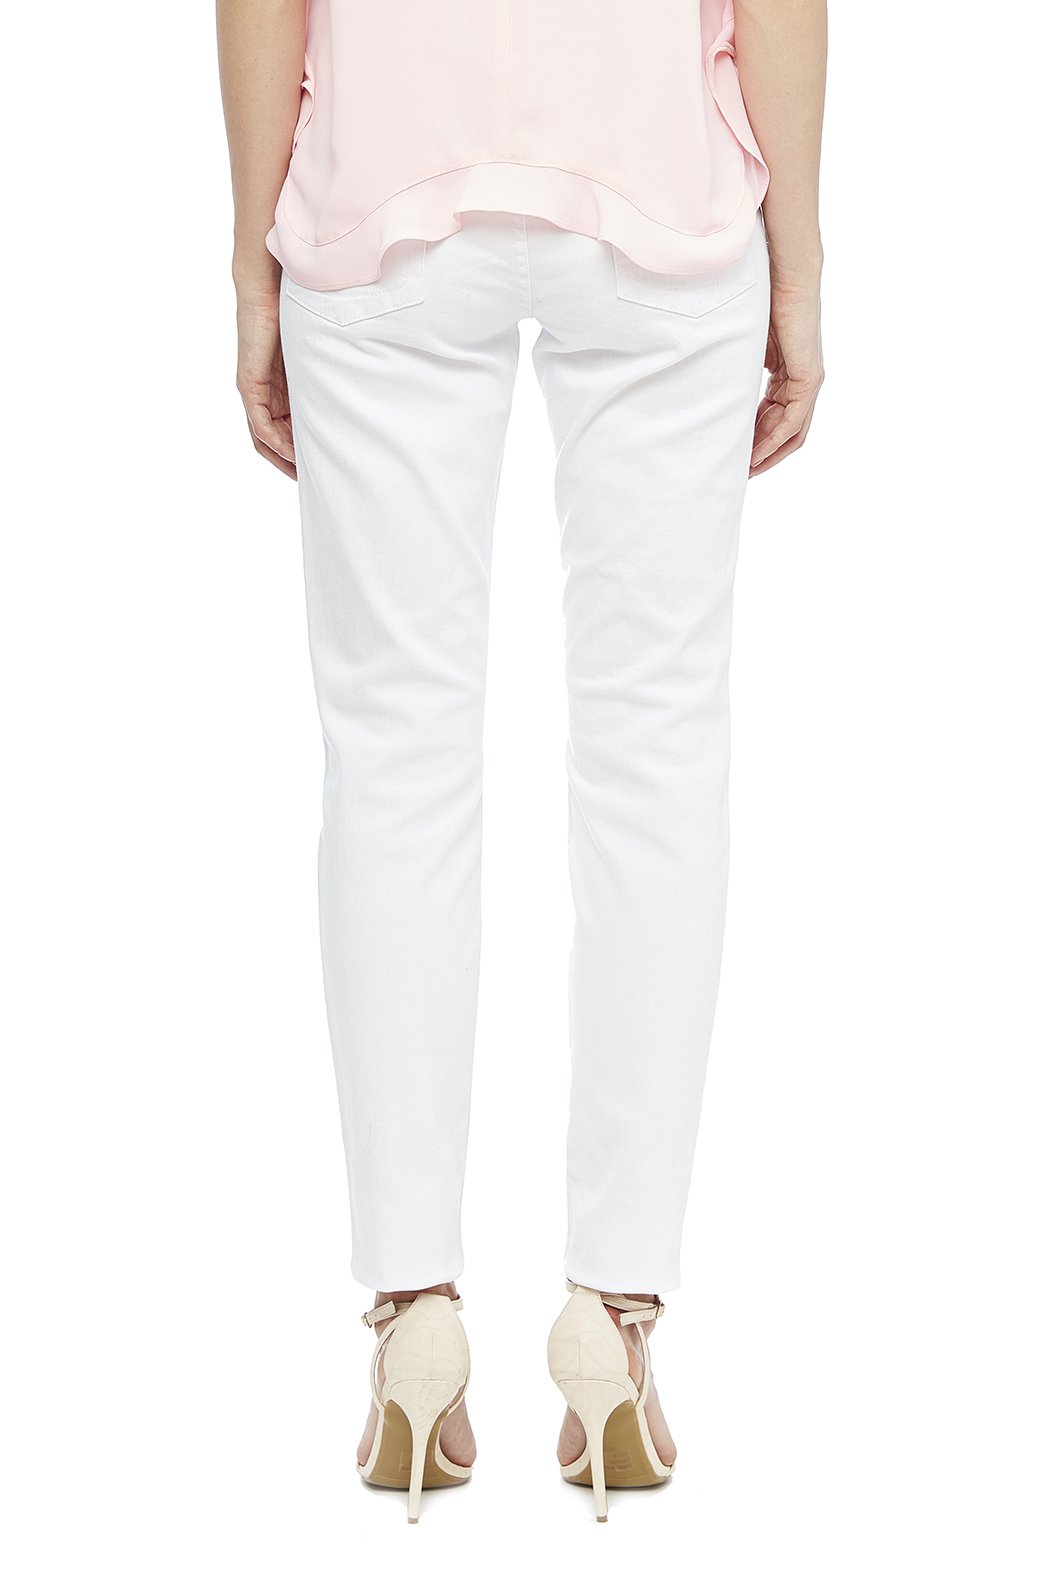 Kut from the Kloth White Skinny Jean - Back Cropped Image